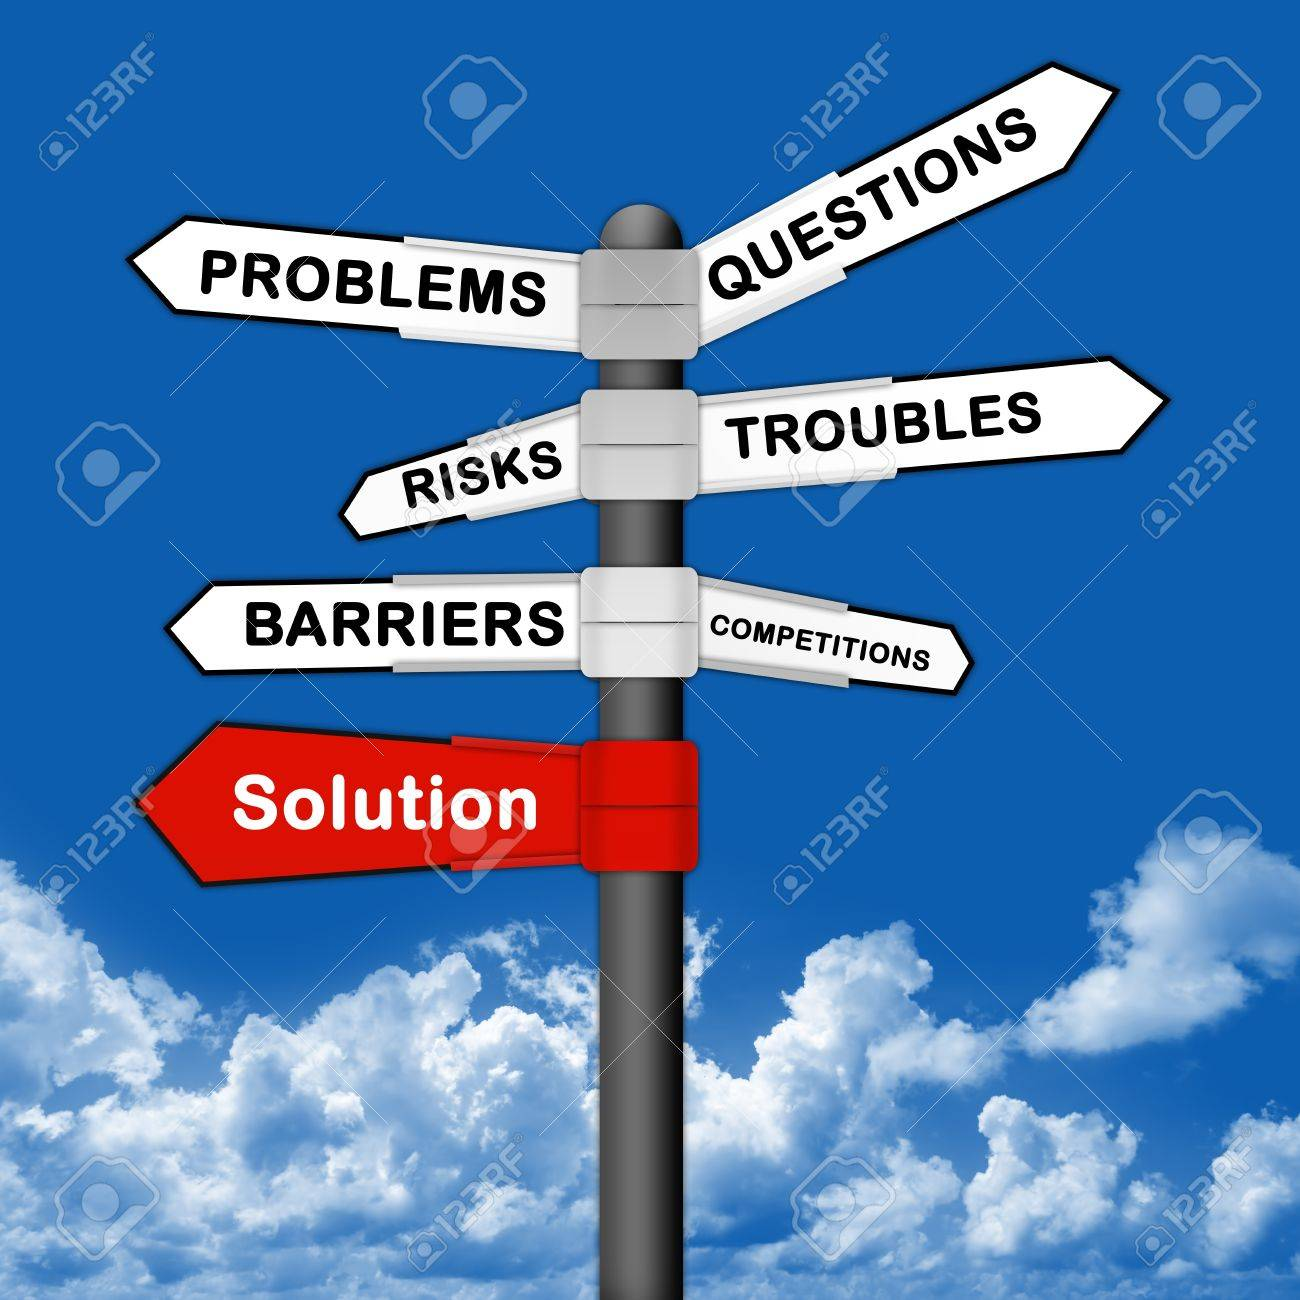 Business Idea Concept With Solution and Many Problem Traffic Sign on Blue Sky Background Stock Photo - 14590028